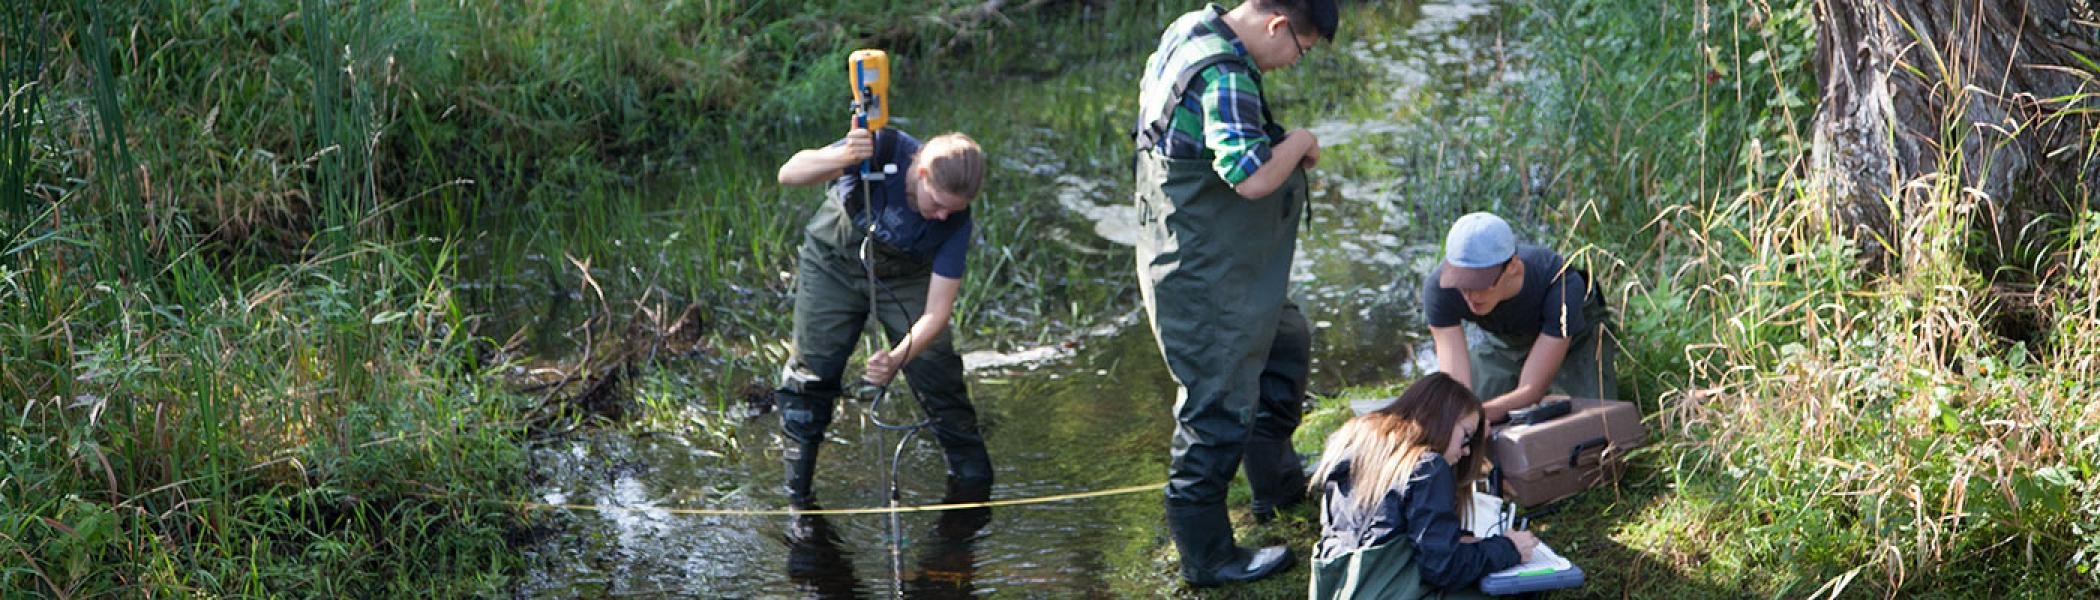 Graduate students in the Environmental Monitoring and Assessment program in a river taking samples